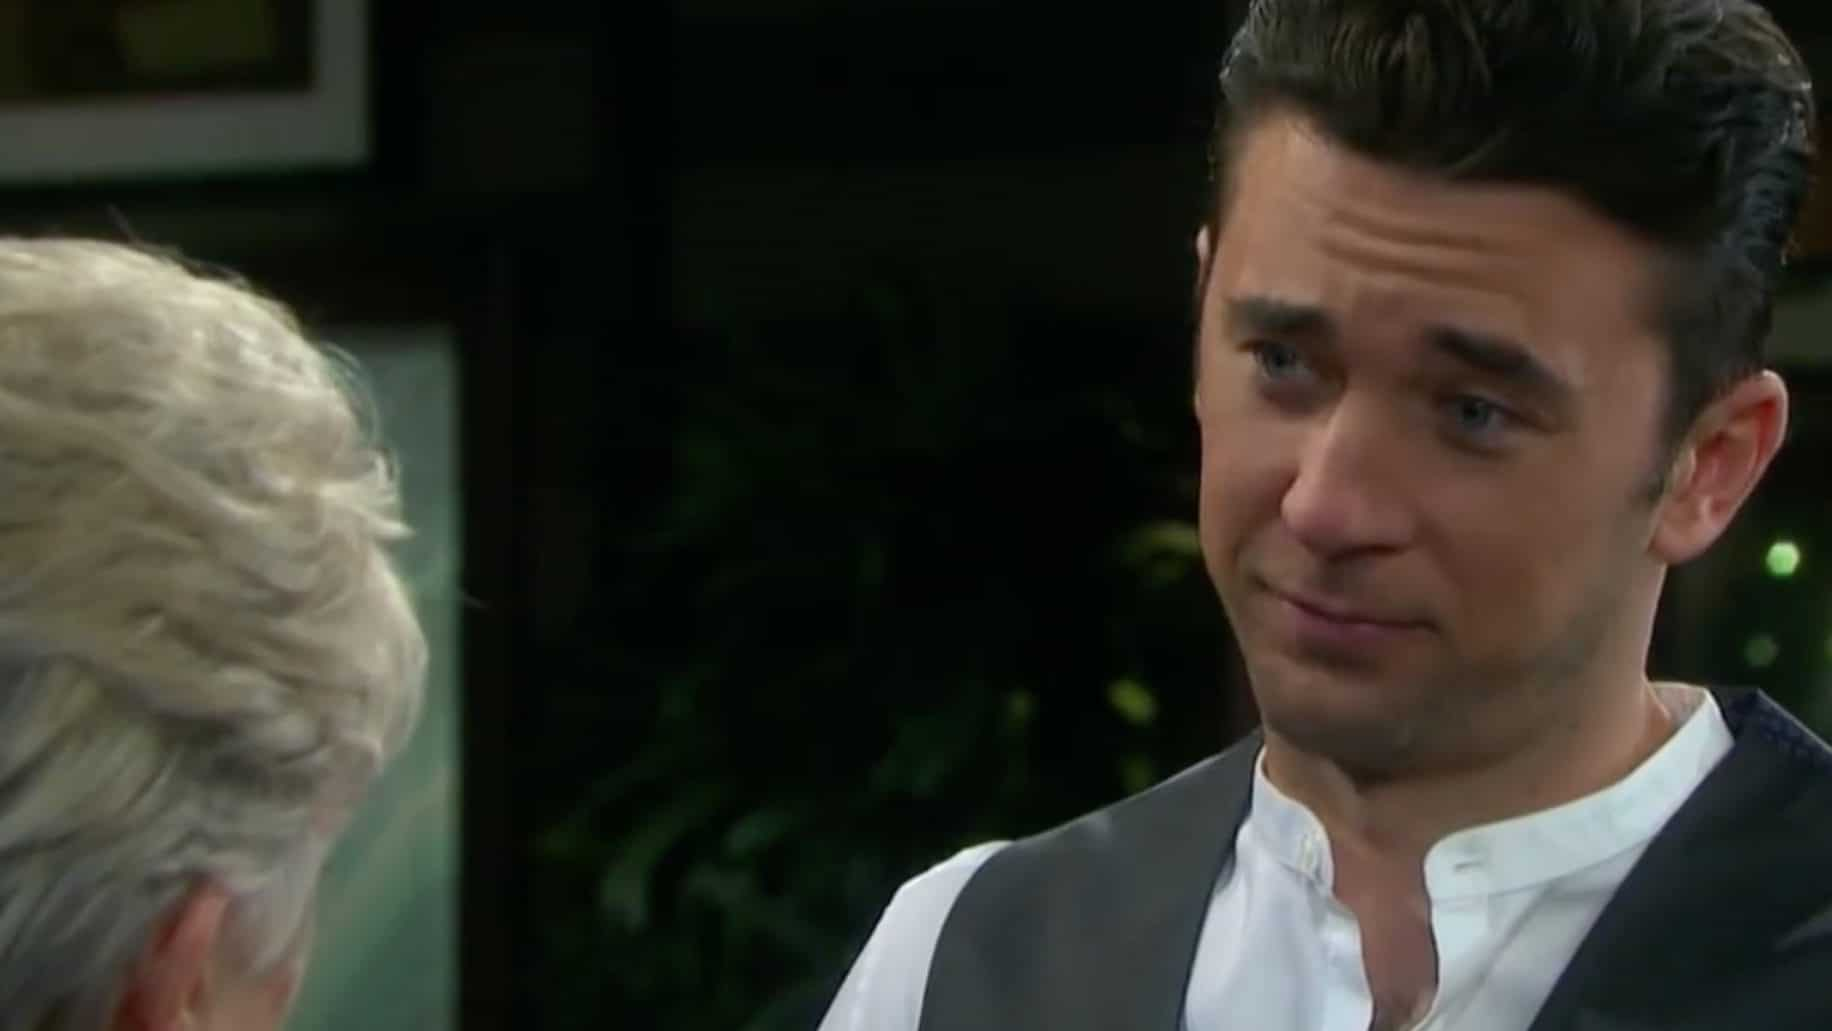 chad days of our lives - Days of our Lives spoilers for next week: Abe loses it with Sheila, Xander is propositioned, Chabby share happy times